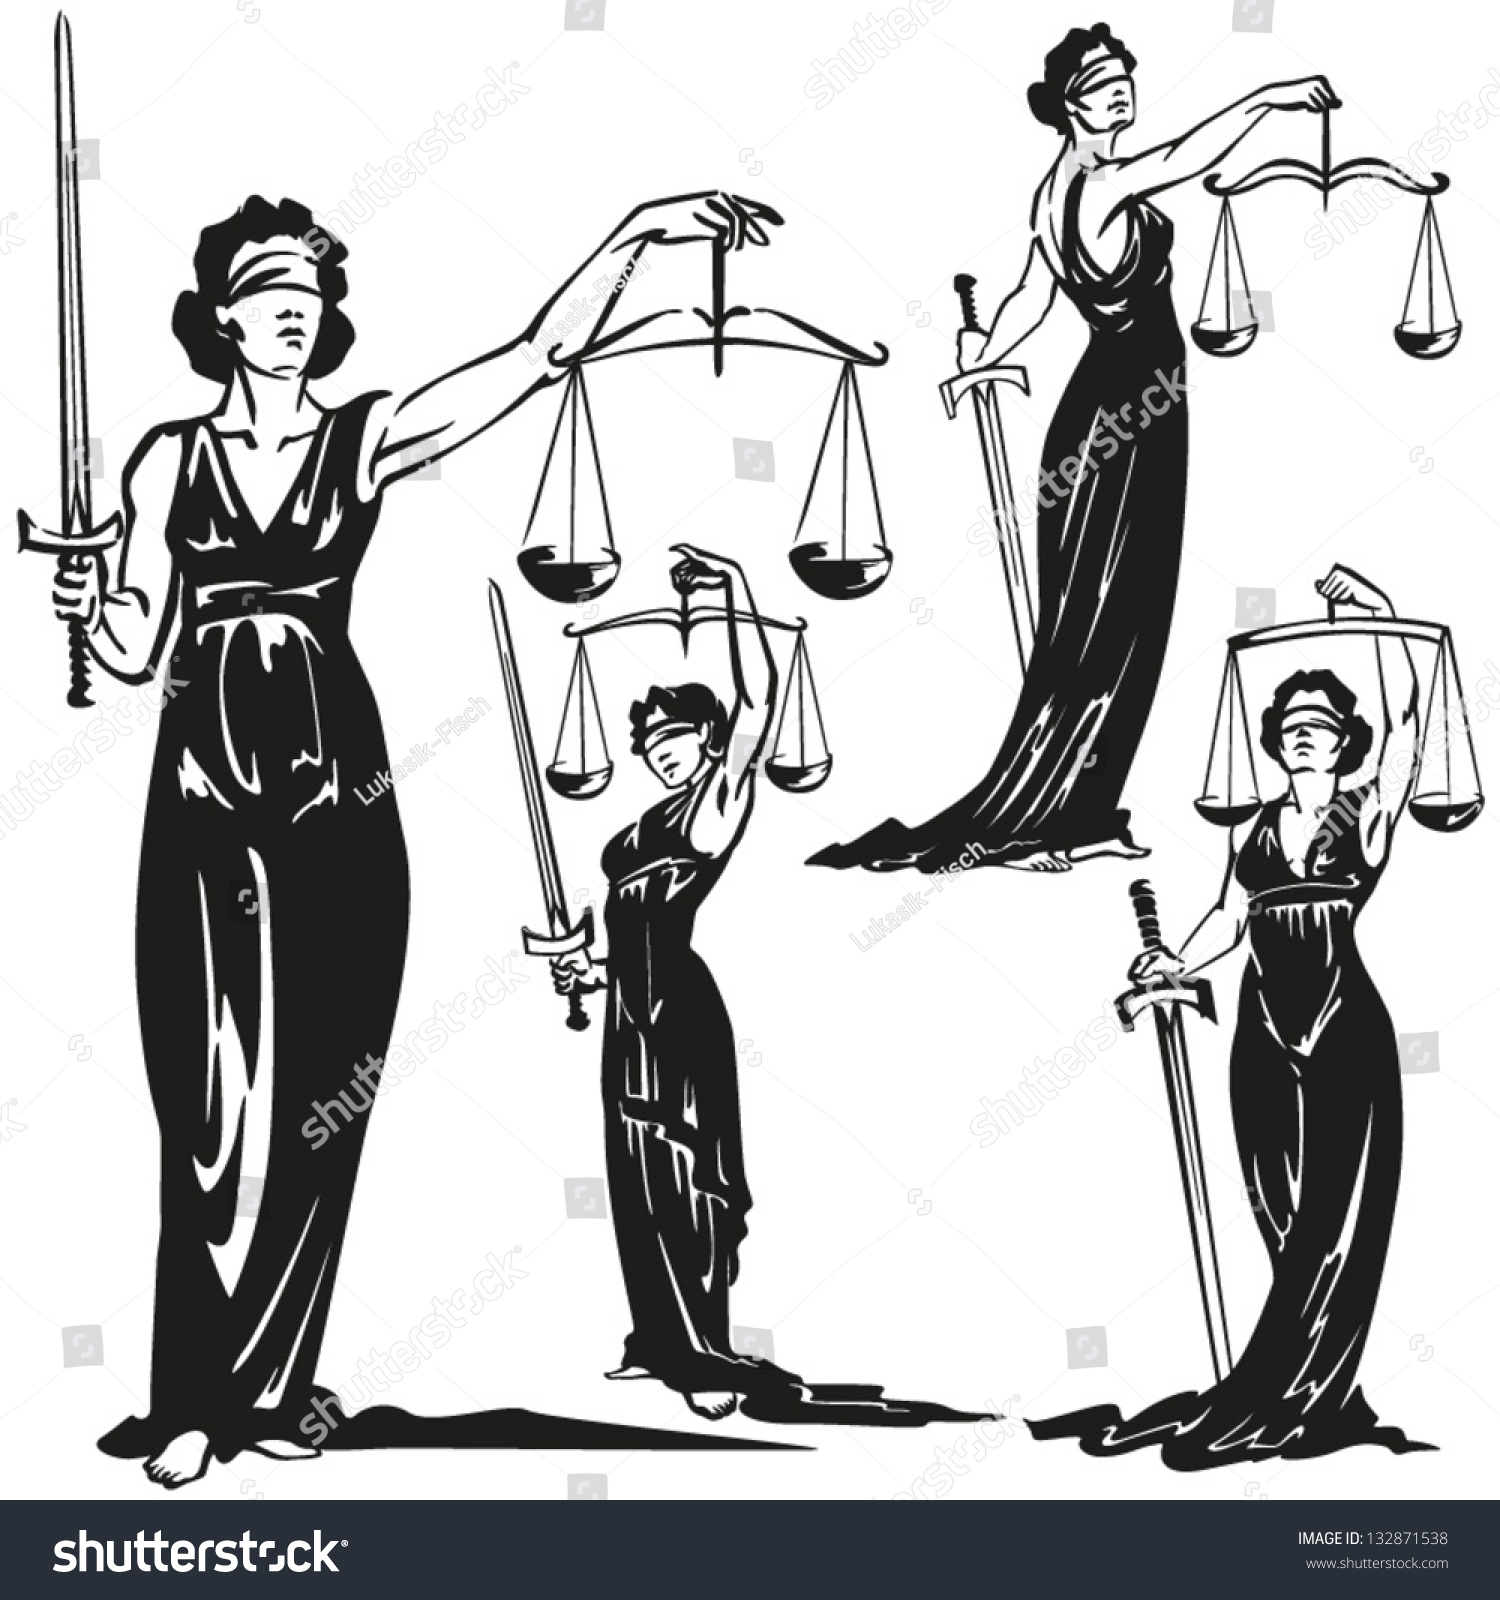 lady justice statue drawing - photo #39